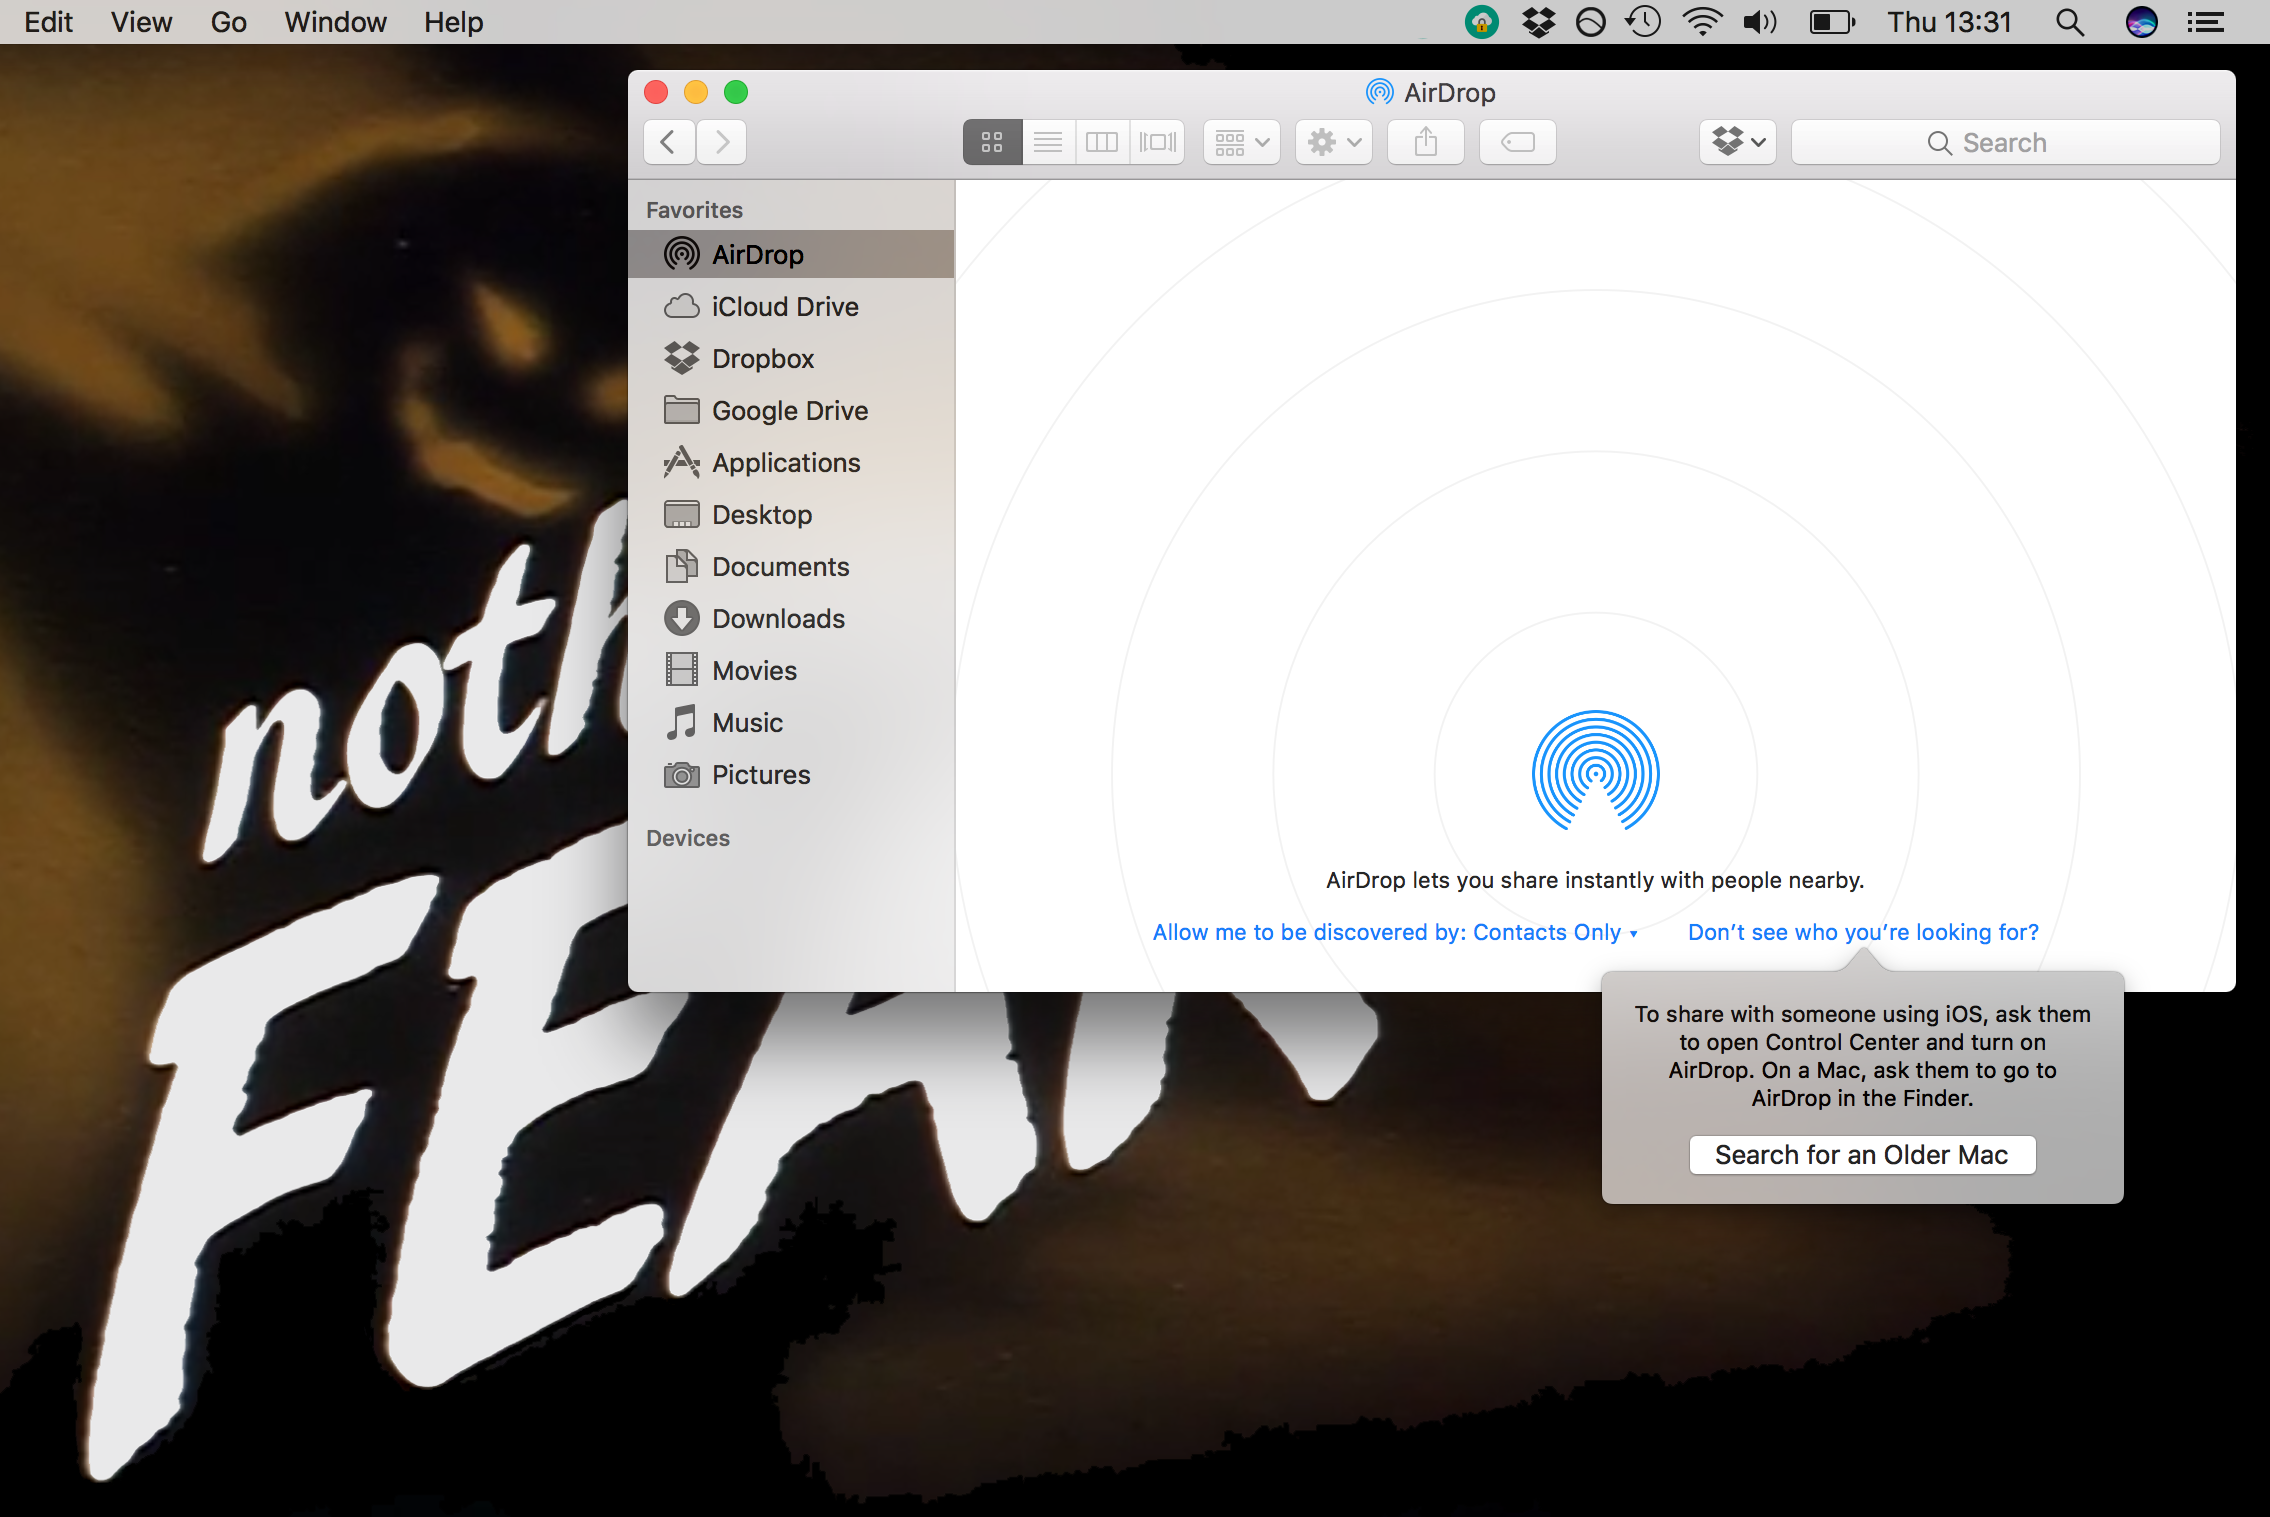 AirDrop Older Mac Search